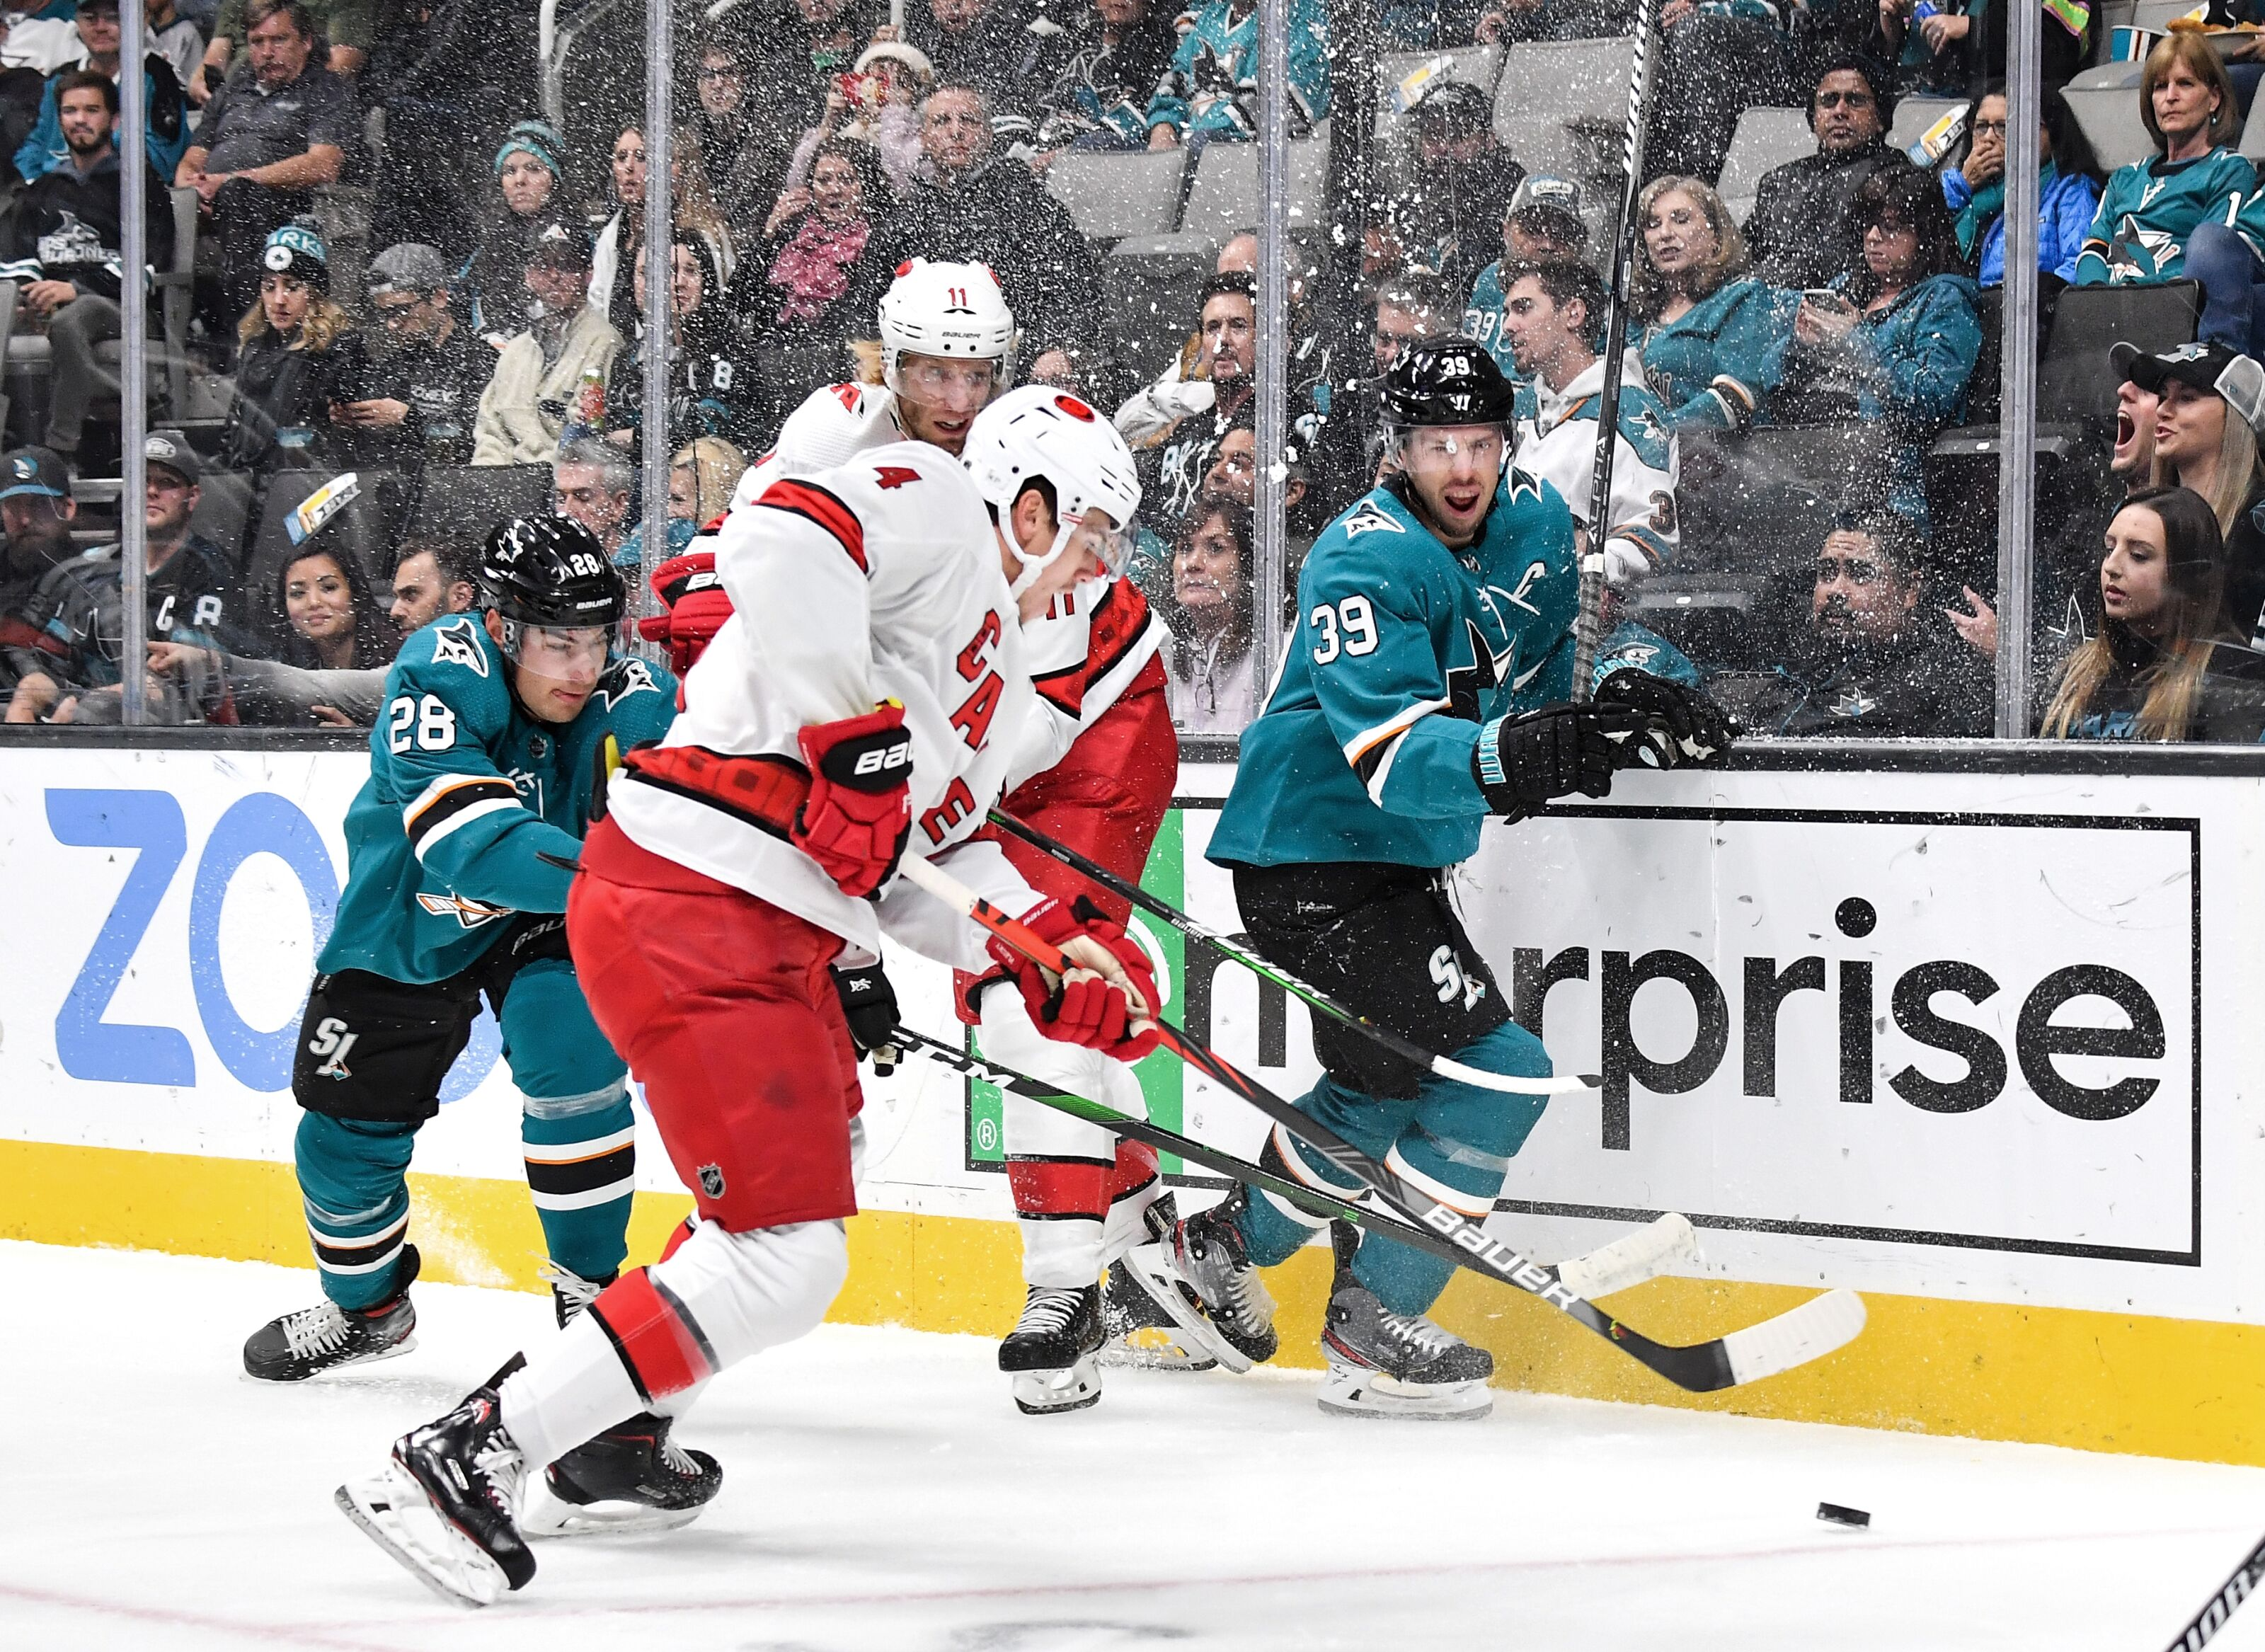 Carolina Hurricanes Drop Game for Second Time this Season to Sharks